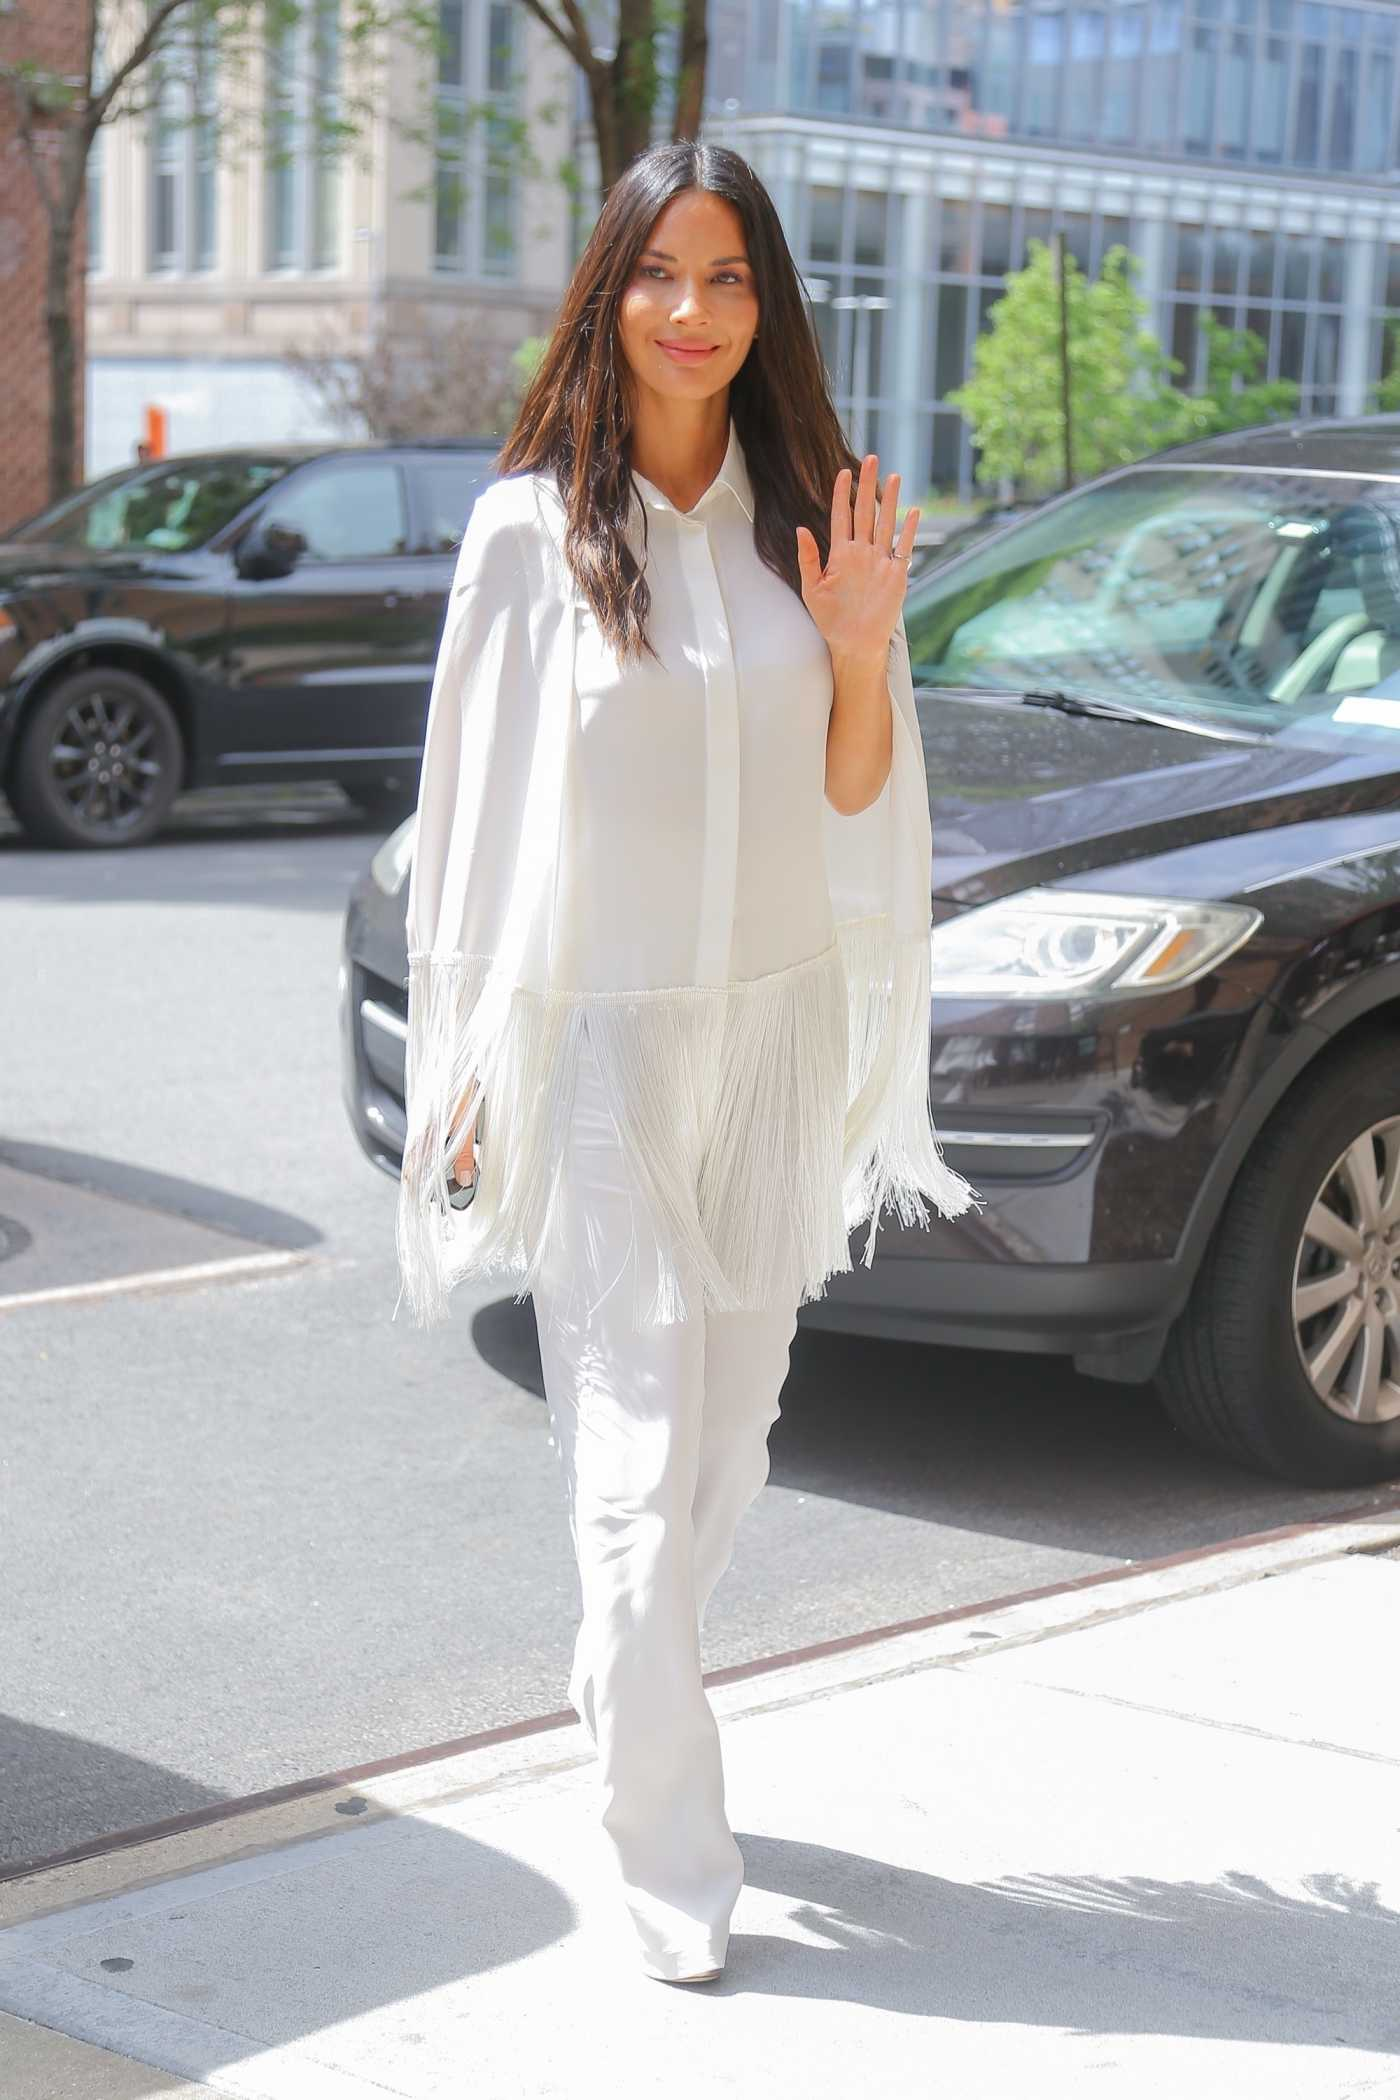 Olivia Munn in a White Pants Was Seen Out in New York 06/25/2019